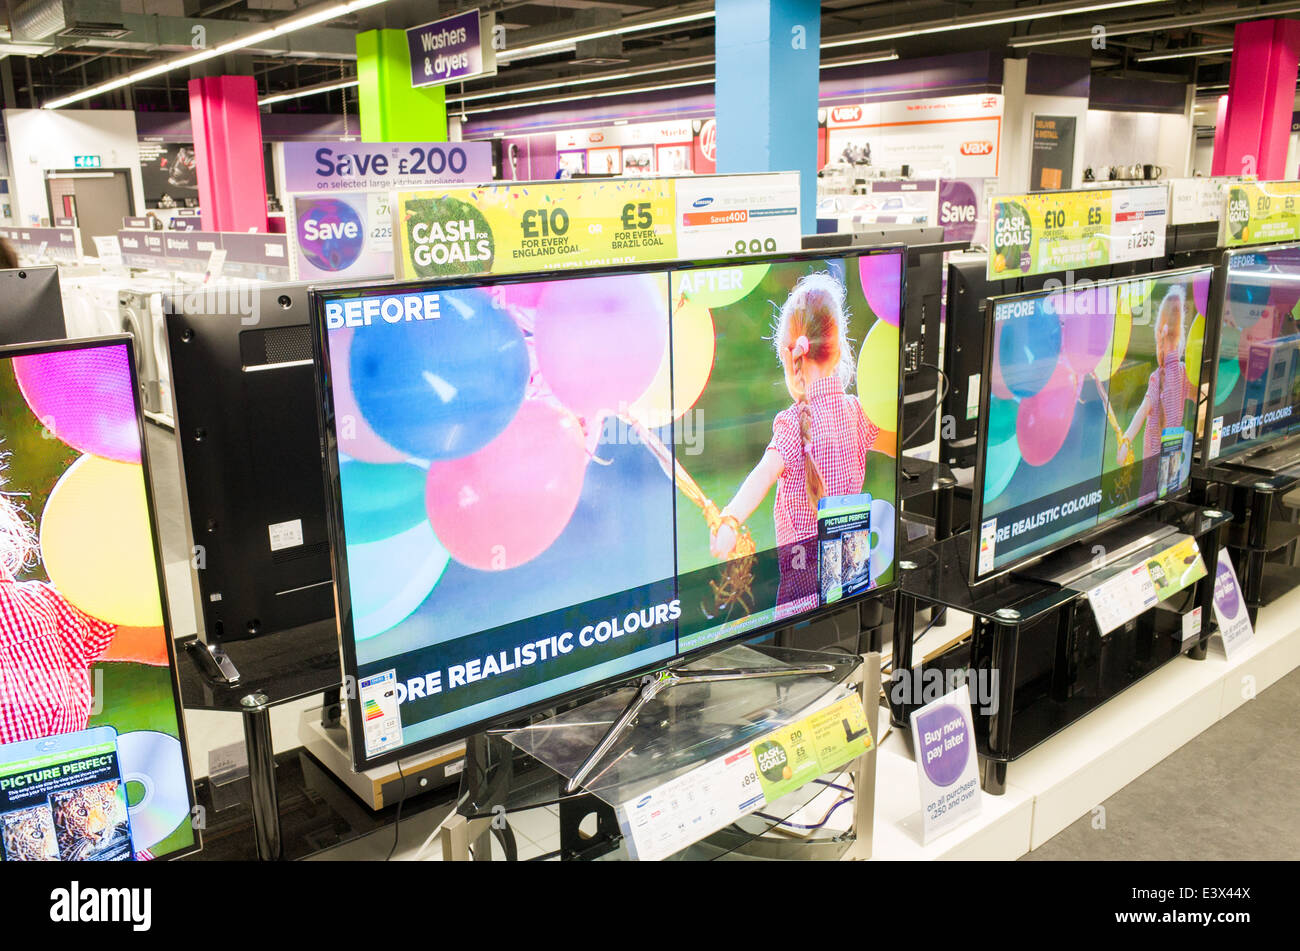 Widescreen televisions for sale at Currys PC World, England, UK - Stock Image